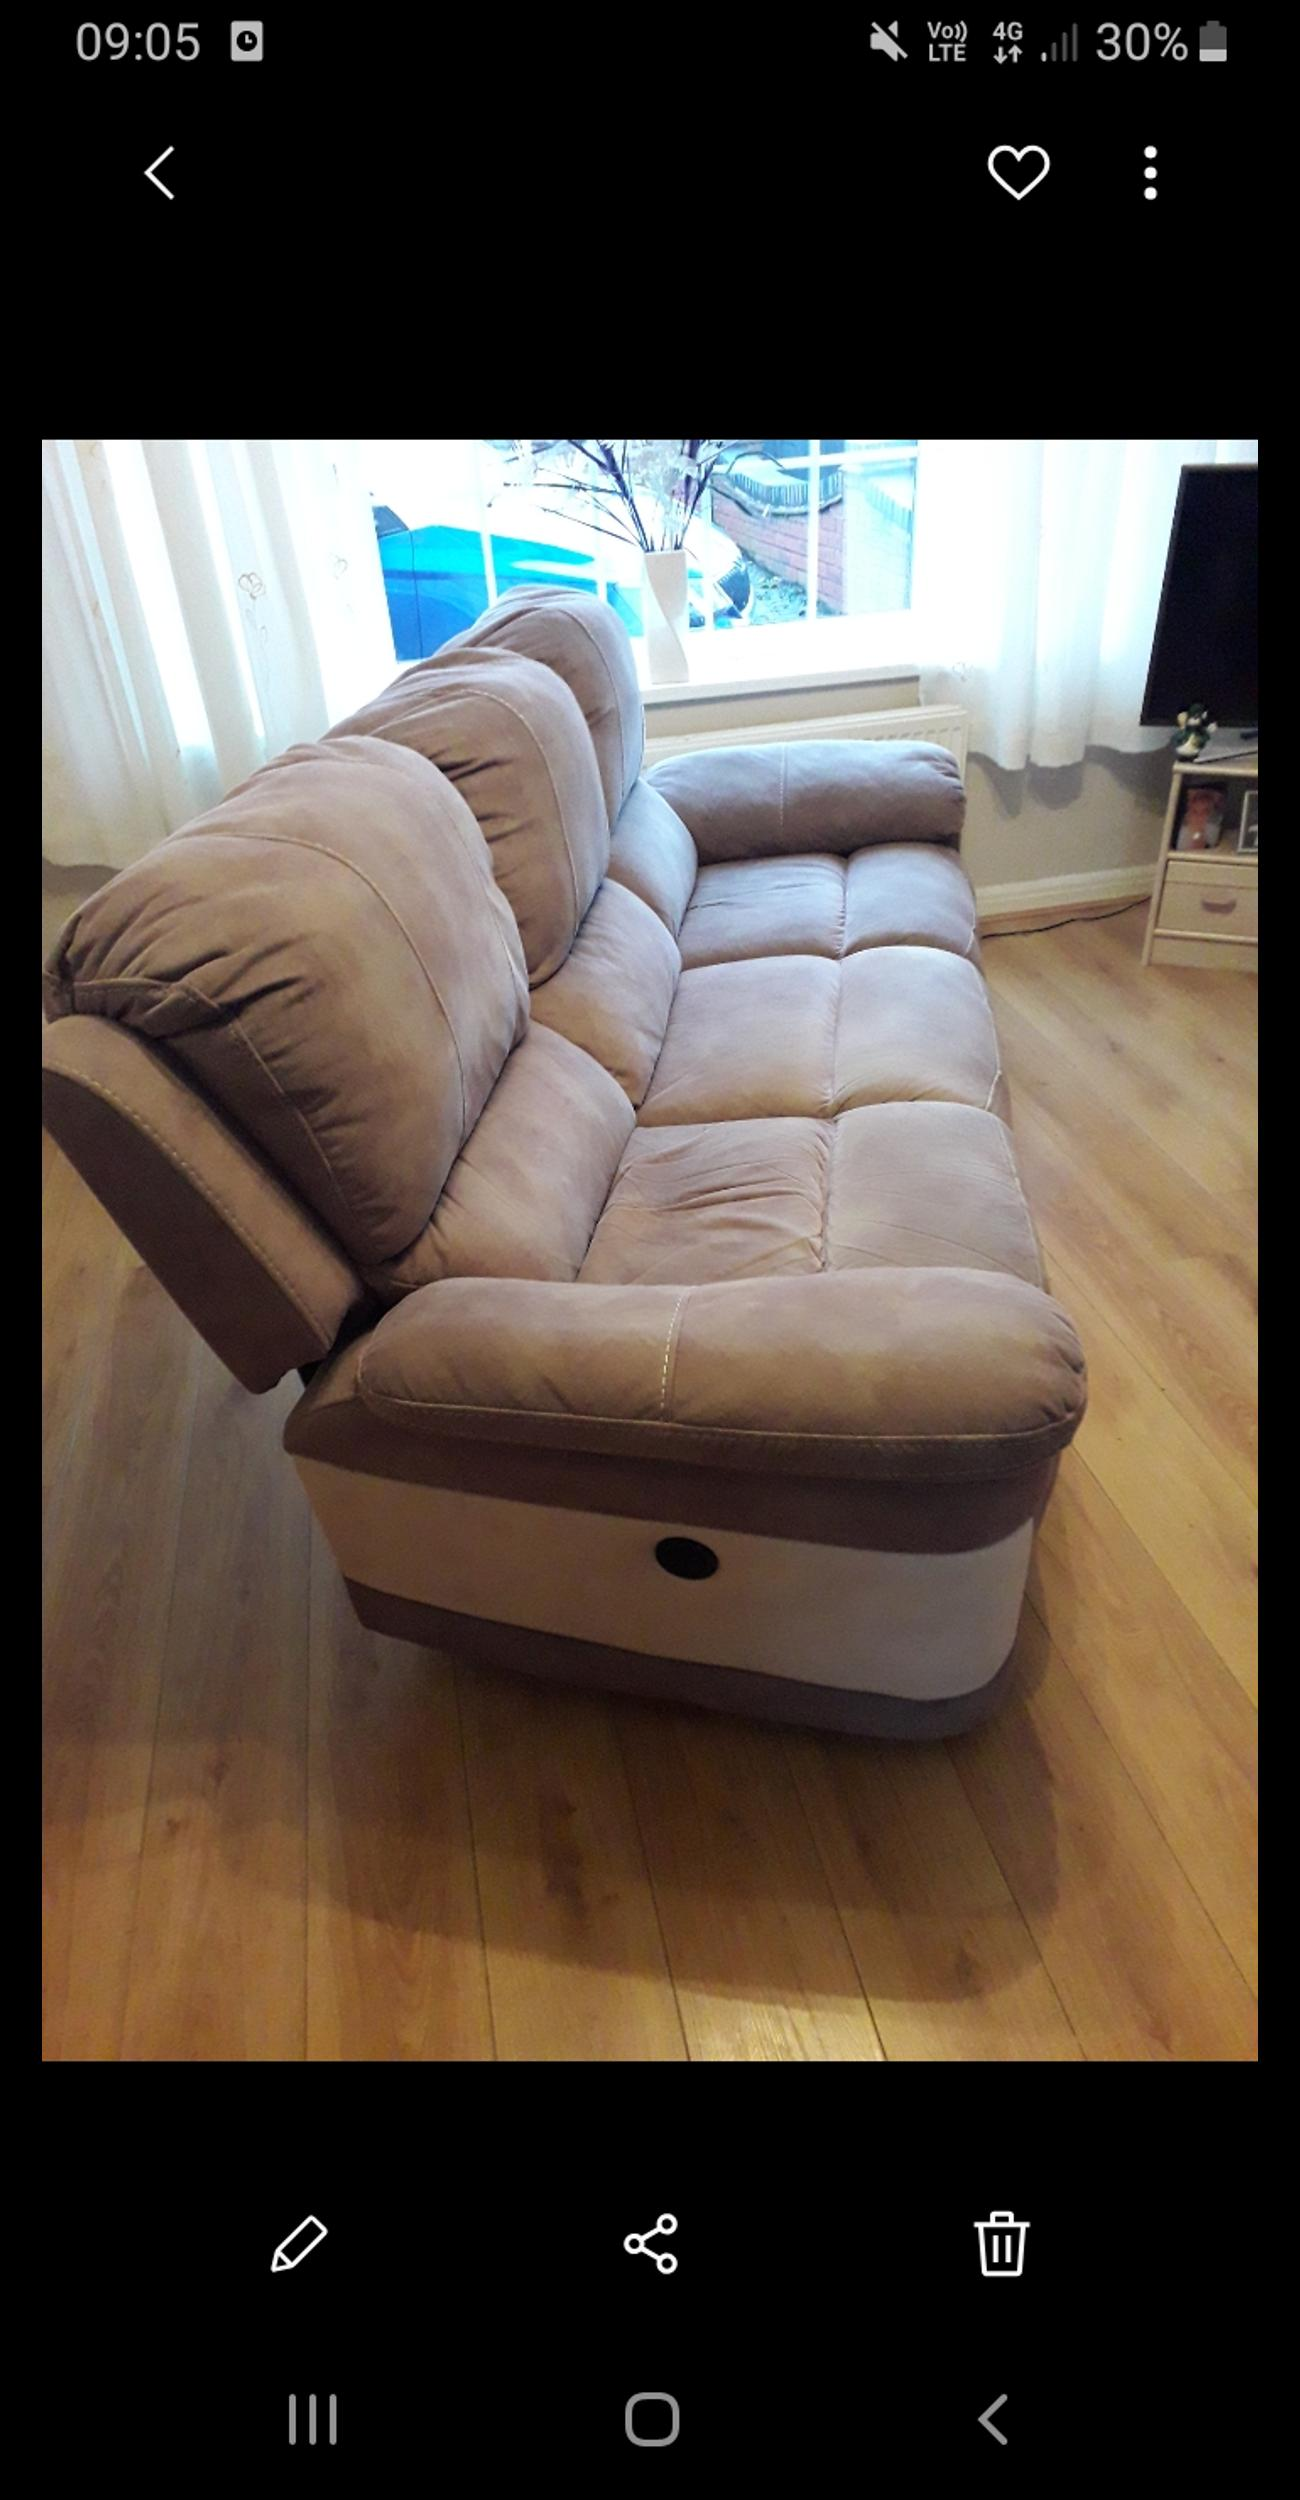 Excellent Condition 2 and 3 seater recliner sofa  Smoke and Pet free home